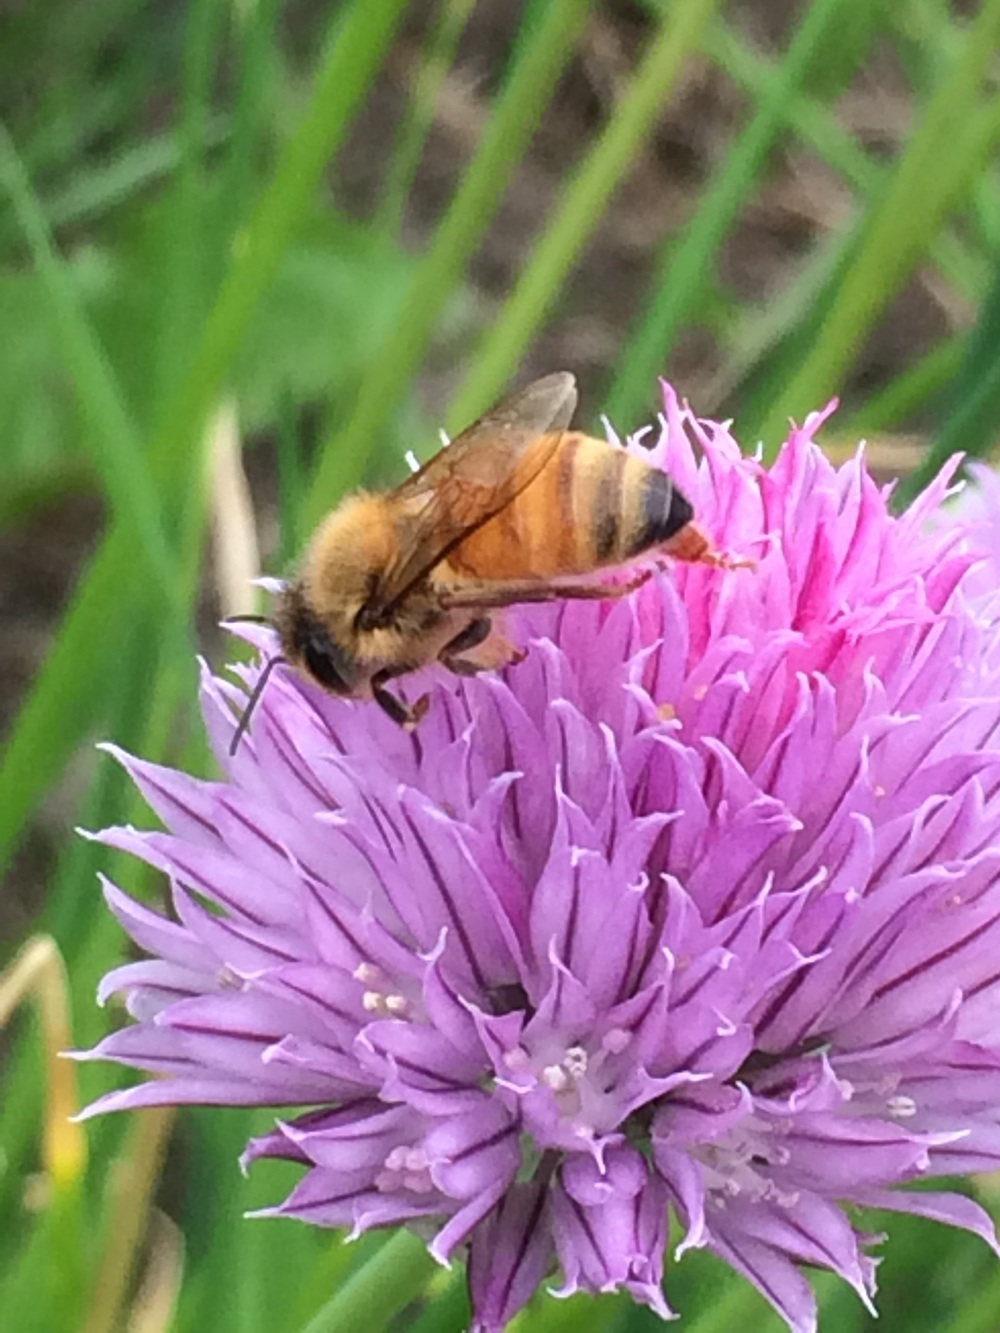 A female honeybee on chive.